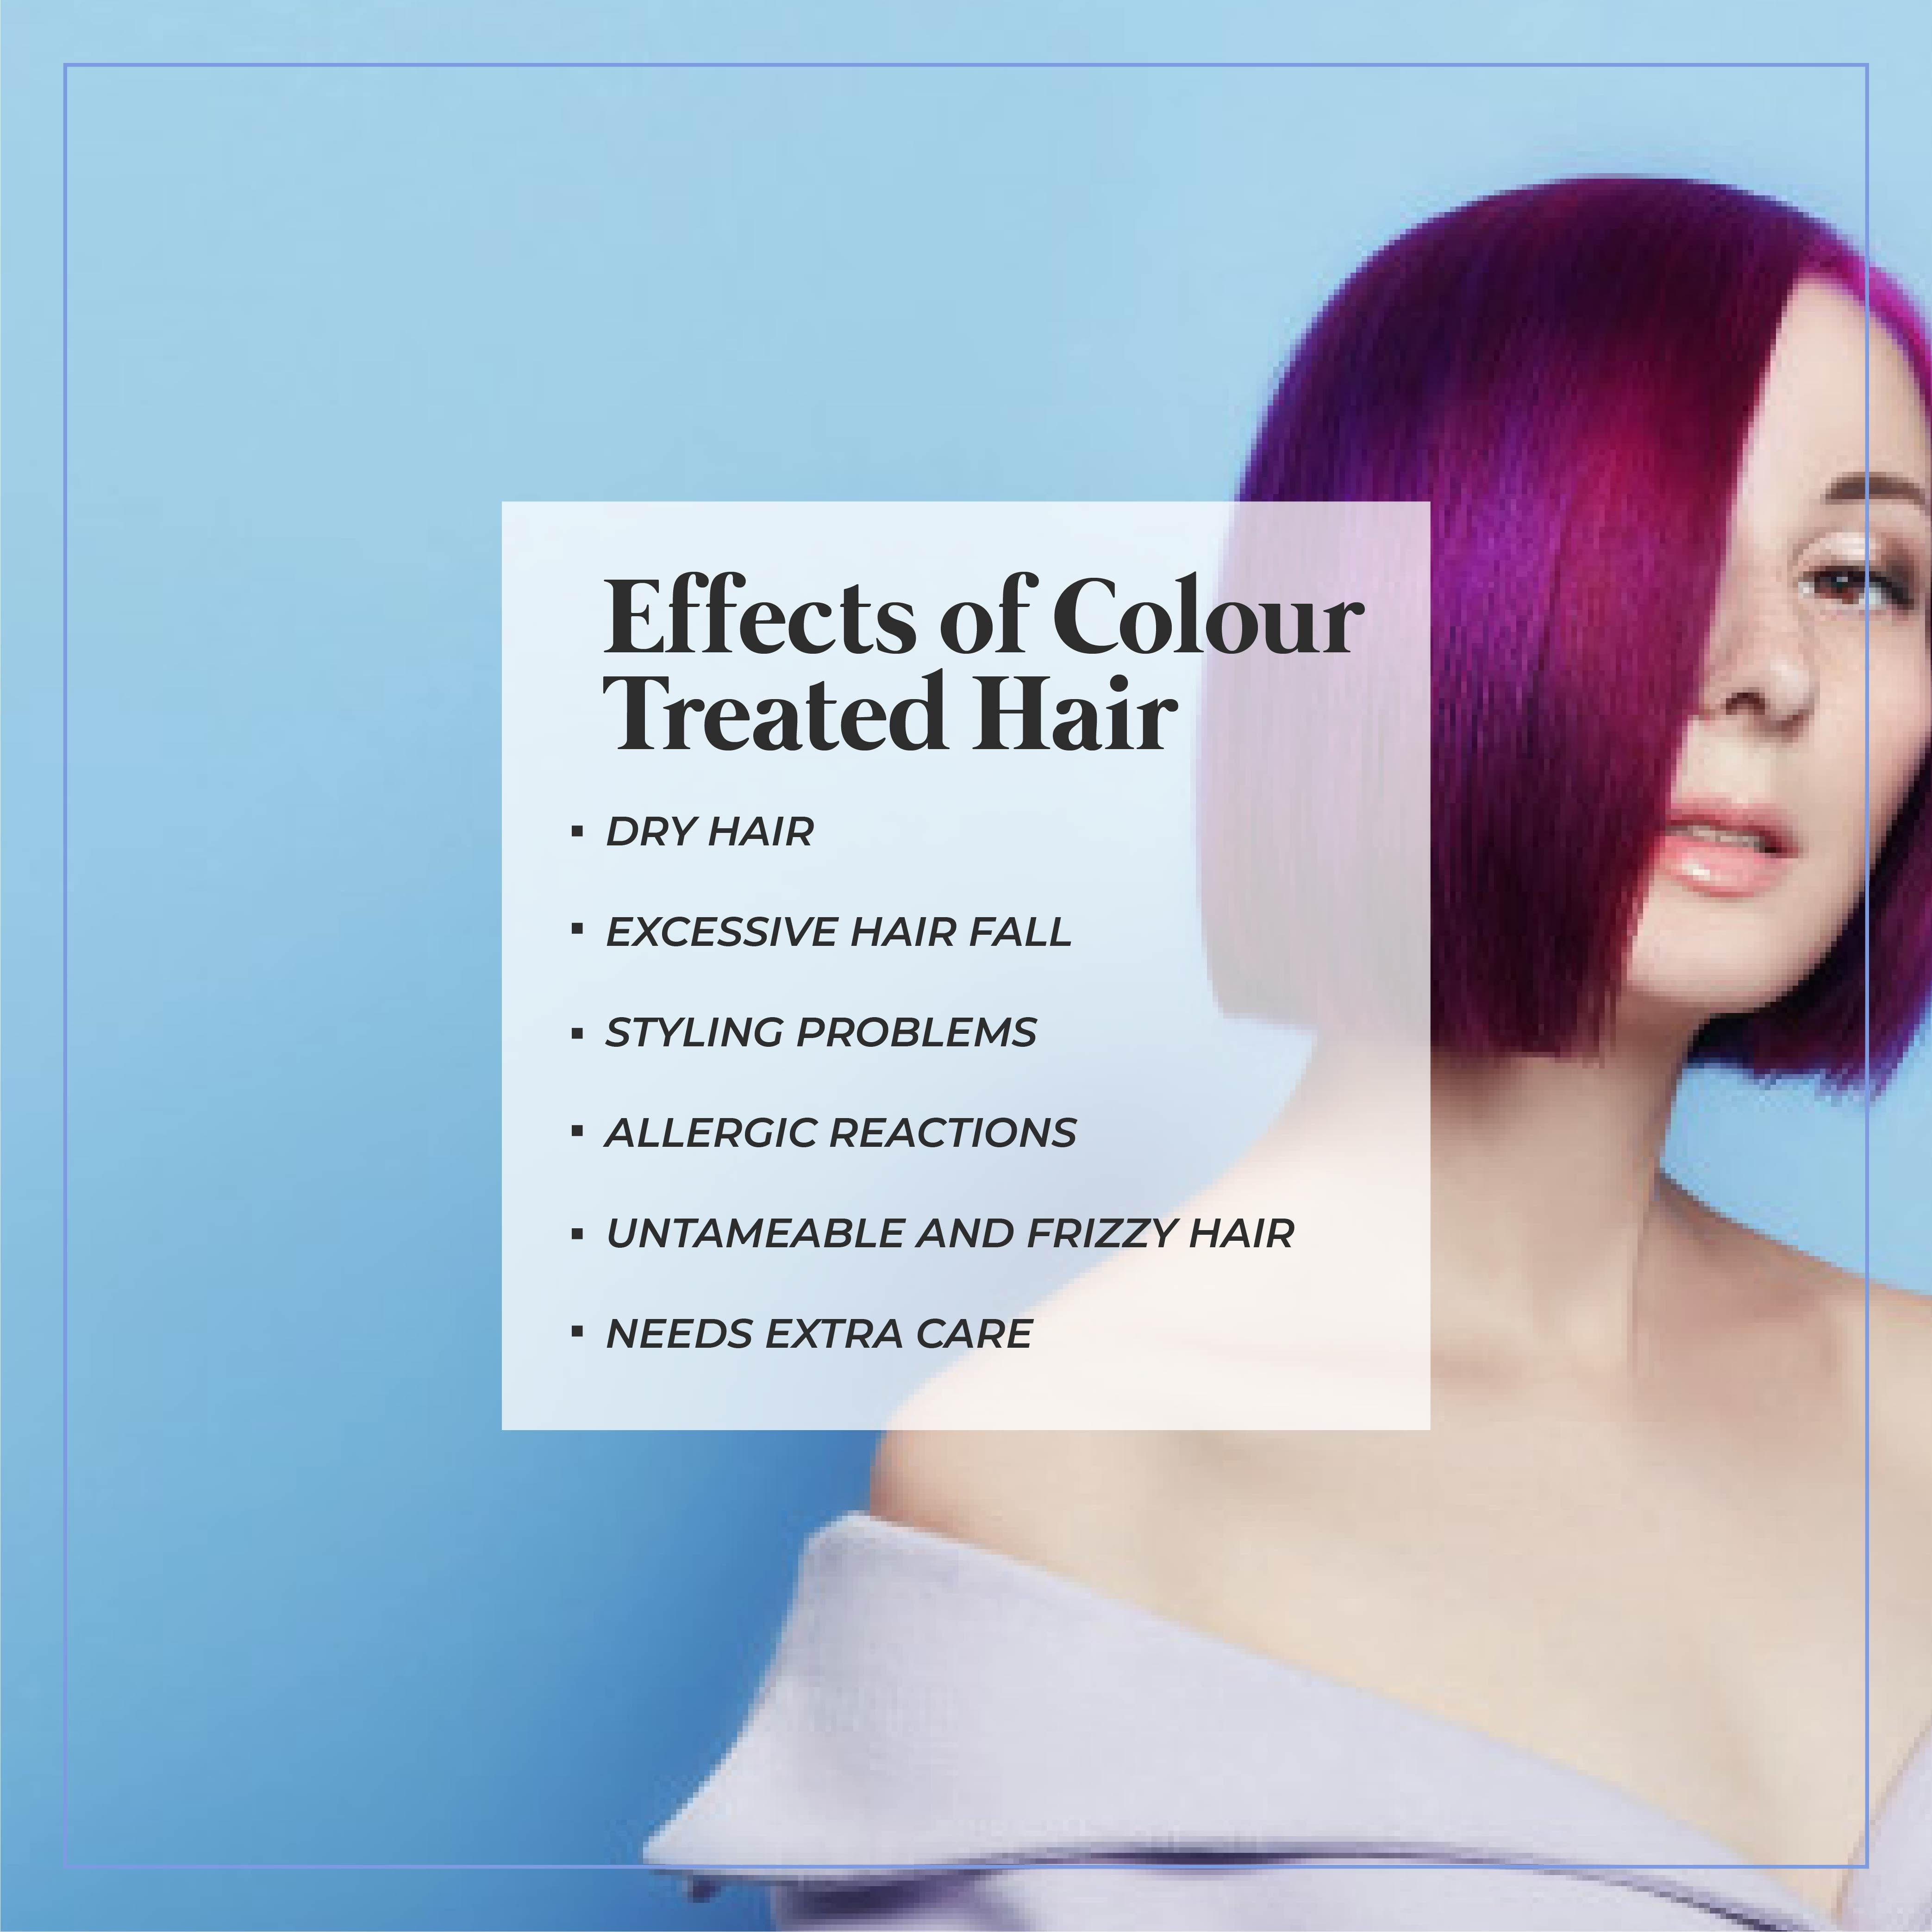 This is an image of effects of colour treated hair